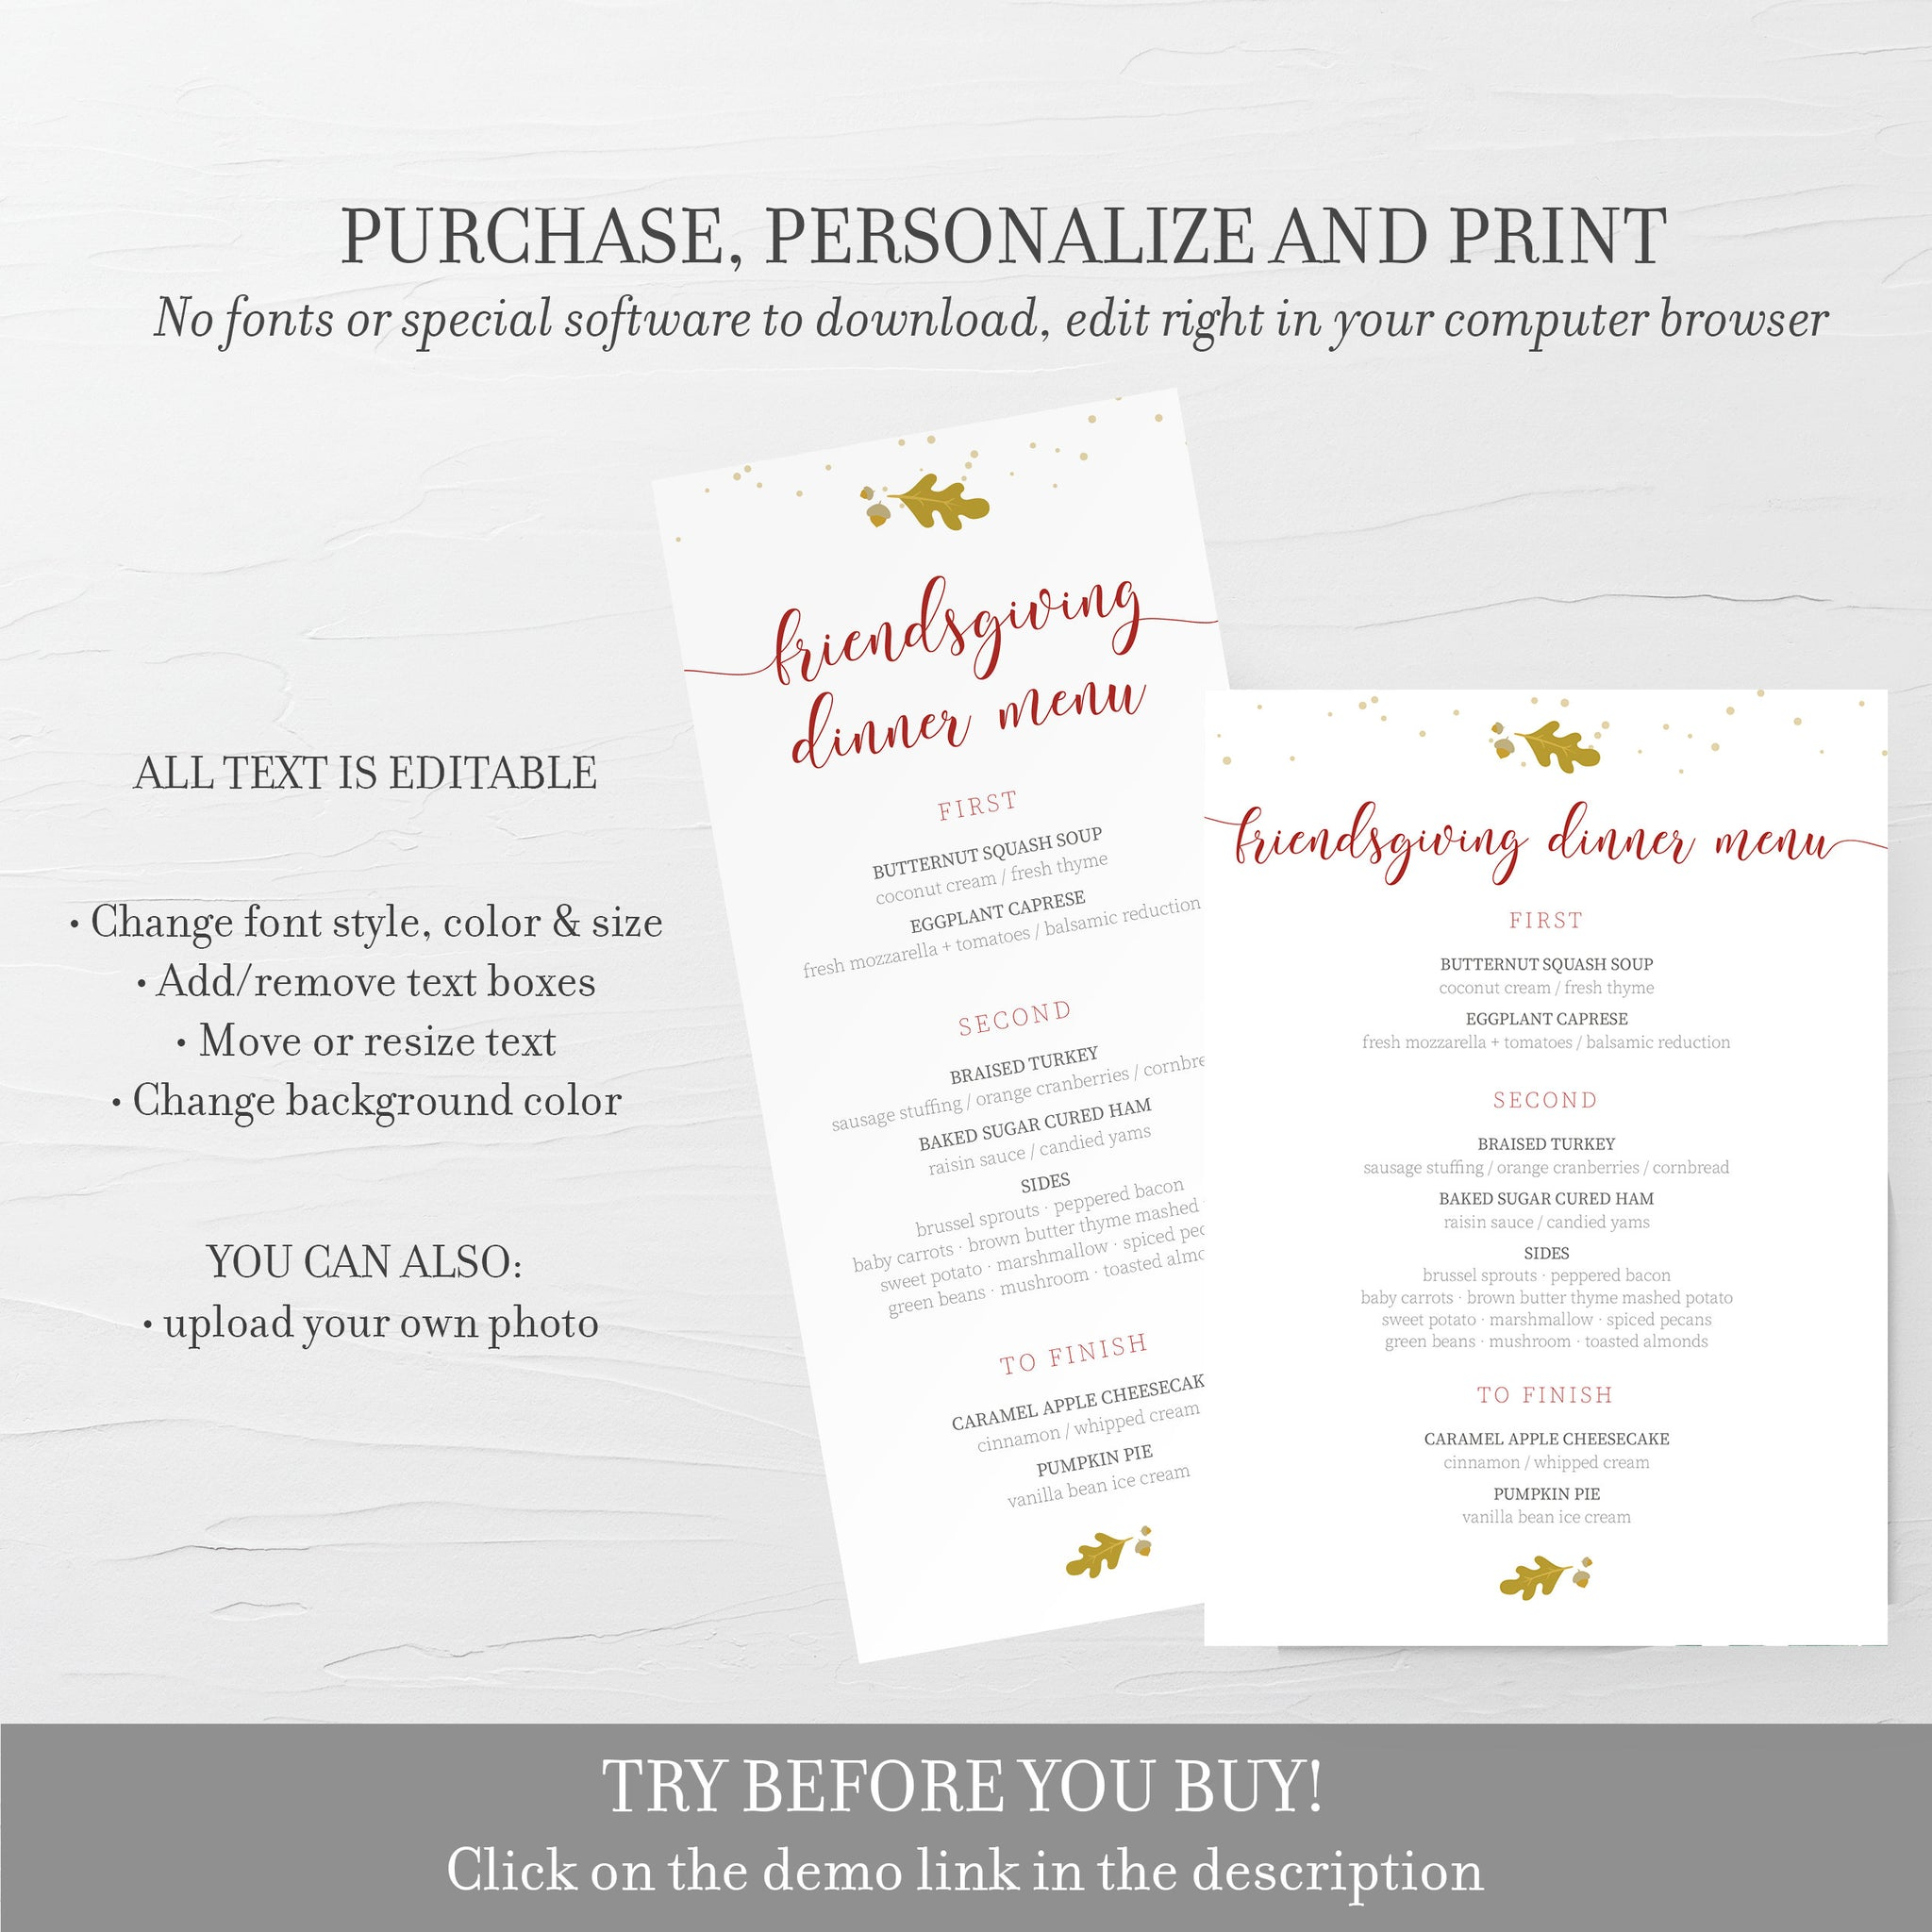 Friendsgiving Menu Template, Friendsgiving Decor, Friendsgiving Decorations, Fall Dinner Menu Printable, Editable DIGITAL DOWNLOAD - FL100 - @PlumPolkaDot